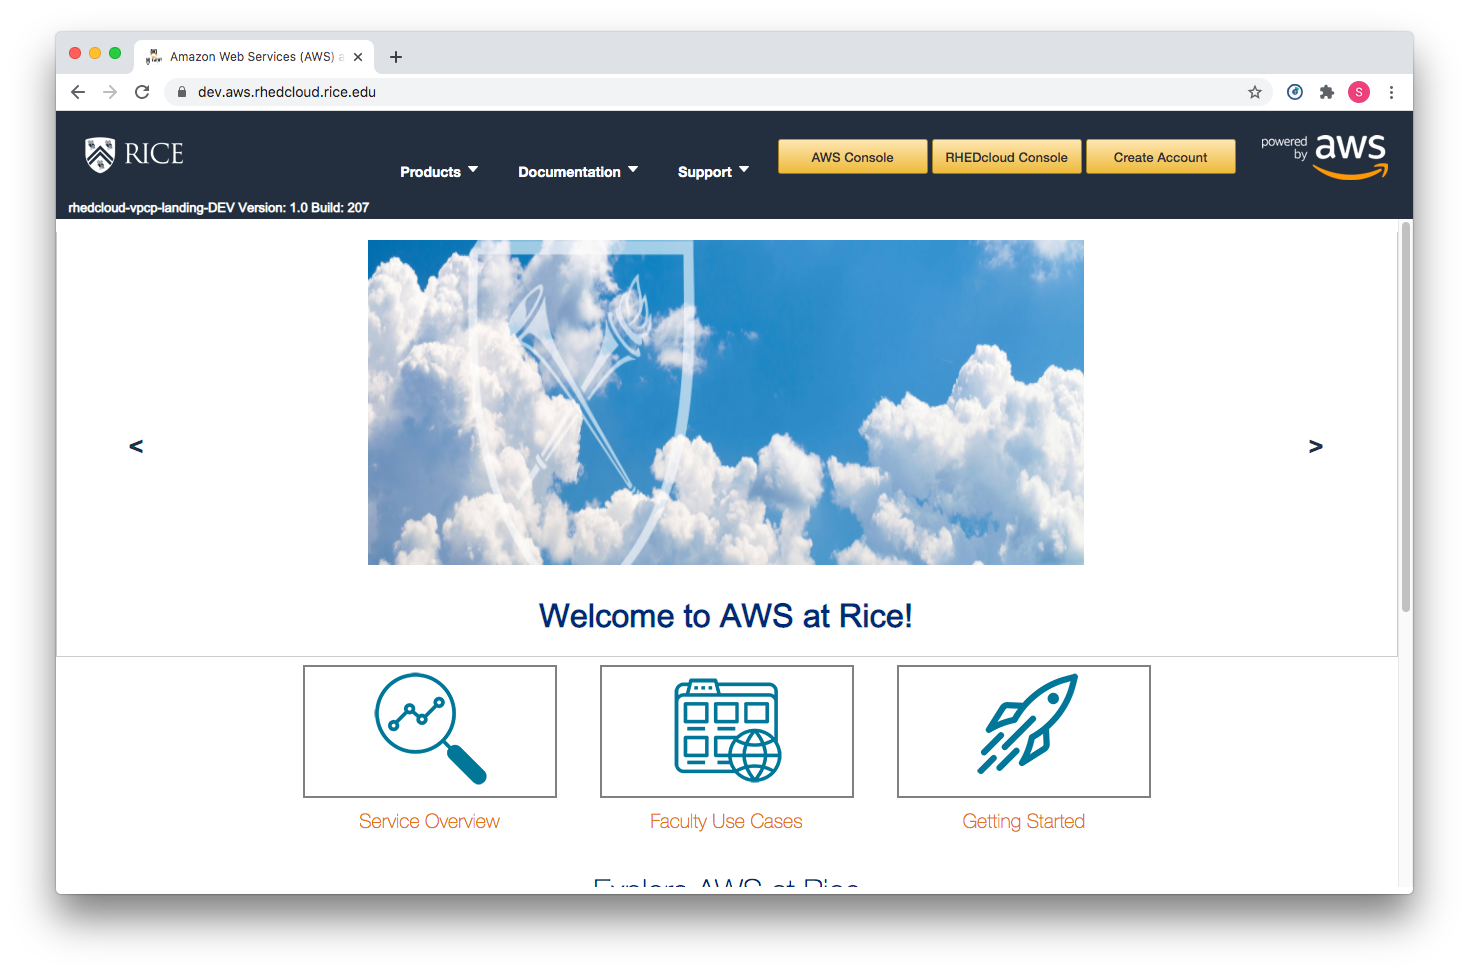 Rice University Implements RHEDcloud for AWS Proof-of-Concept